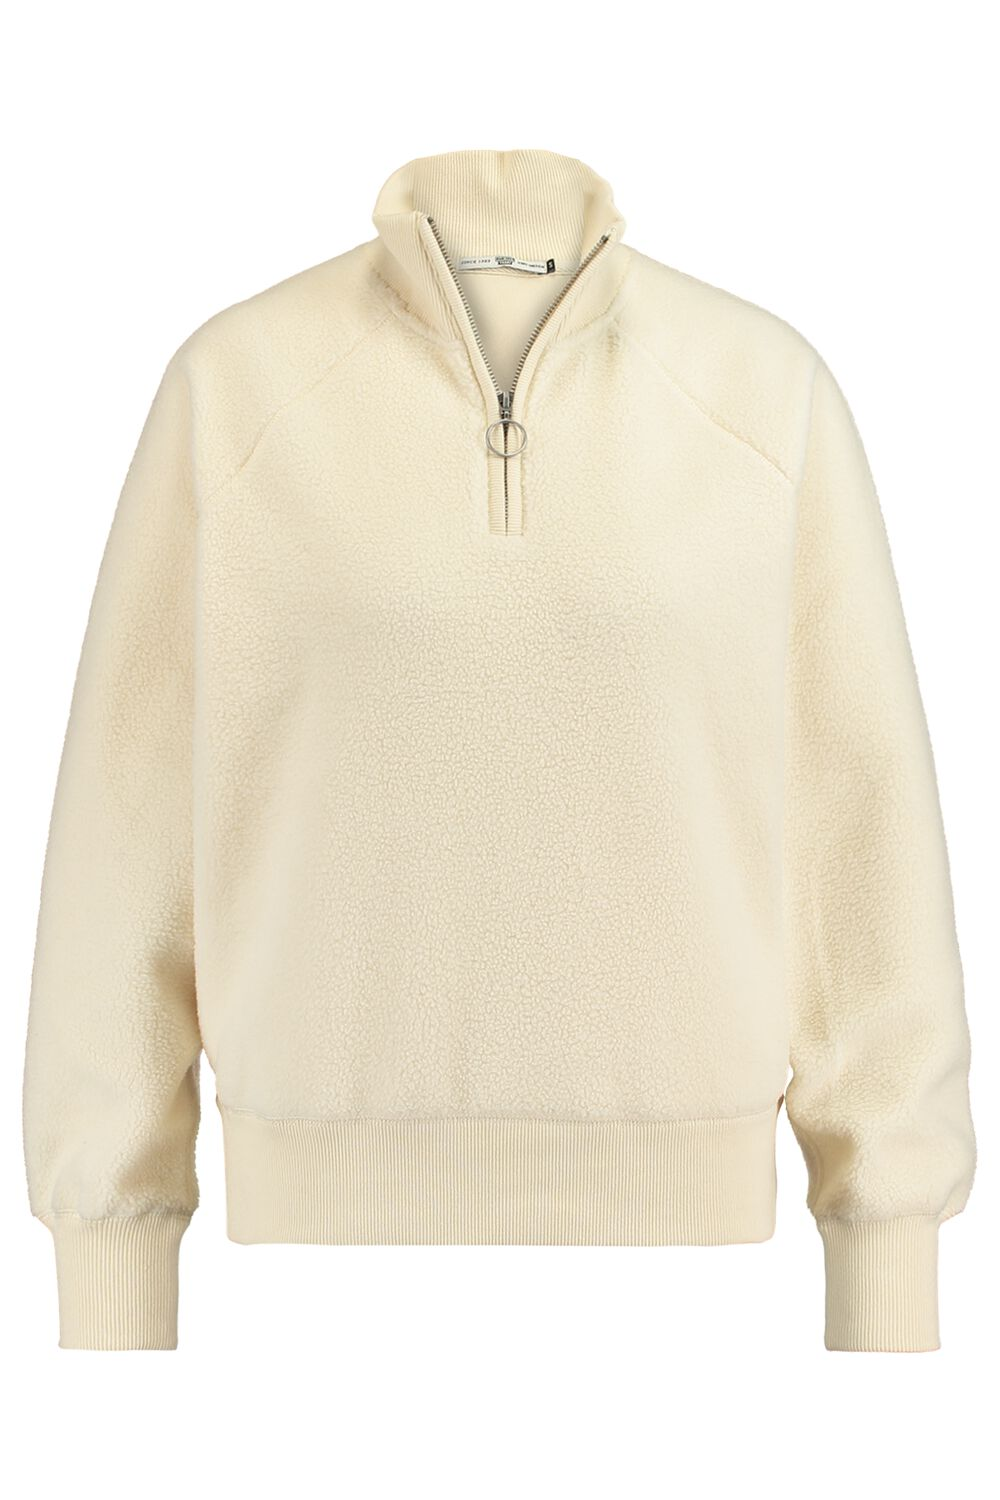 America Today Dames Sweater Seal Wit